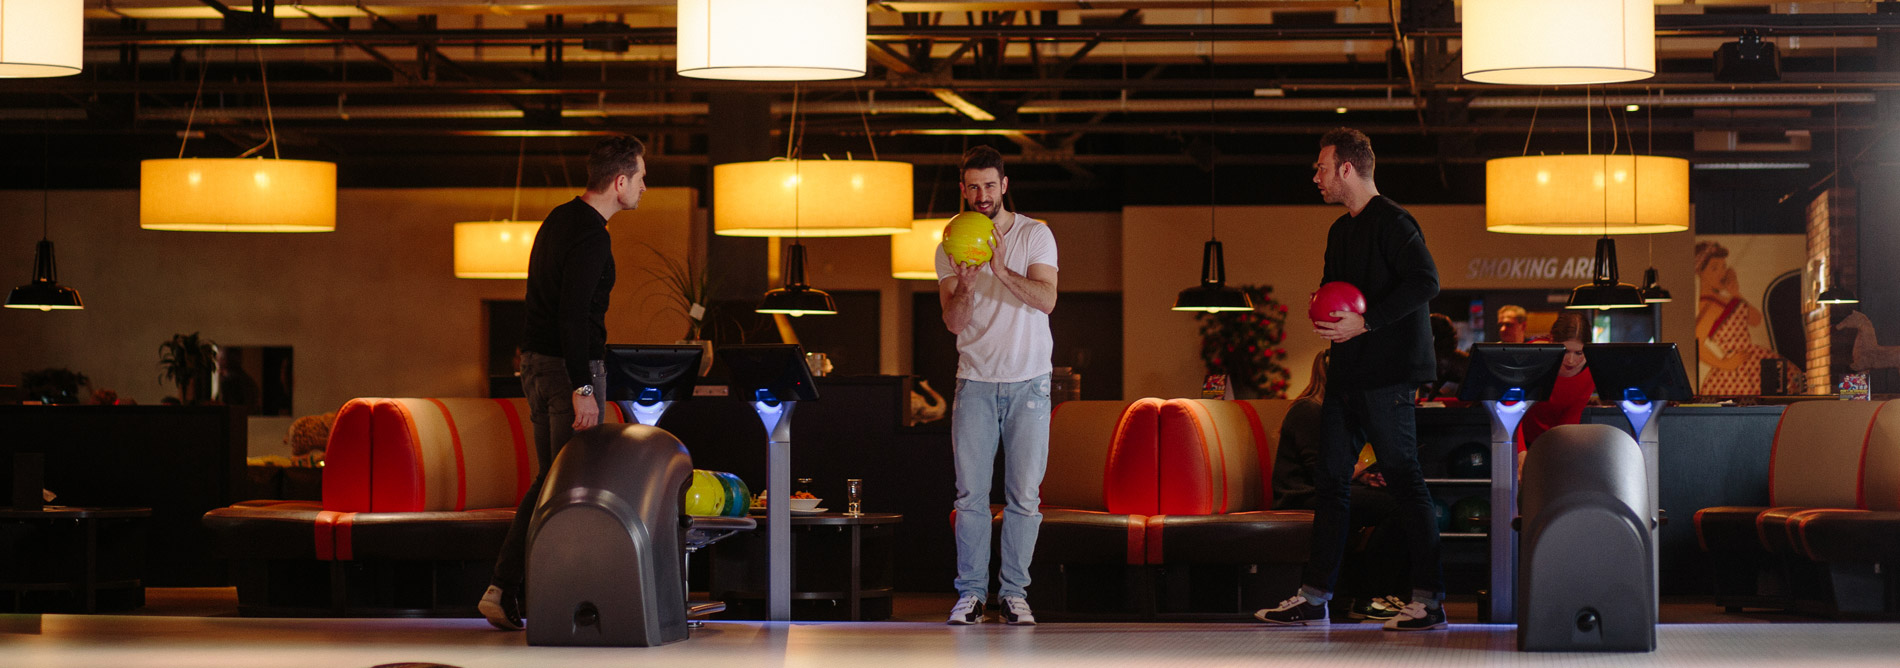 Bowling-QubicaAMF-furniture-feature-banner.jpg